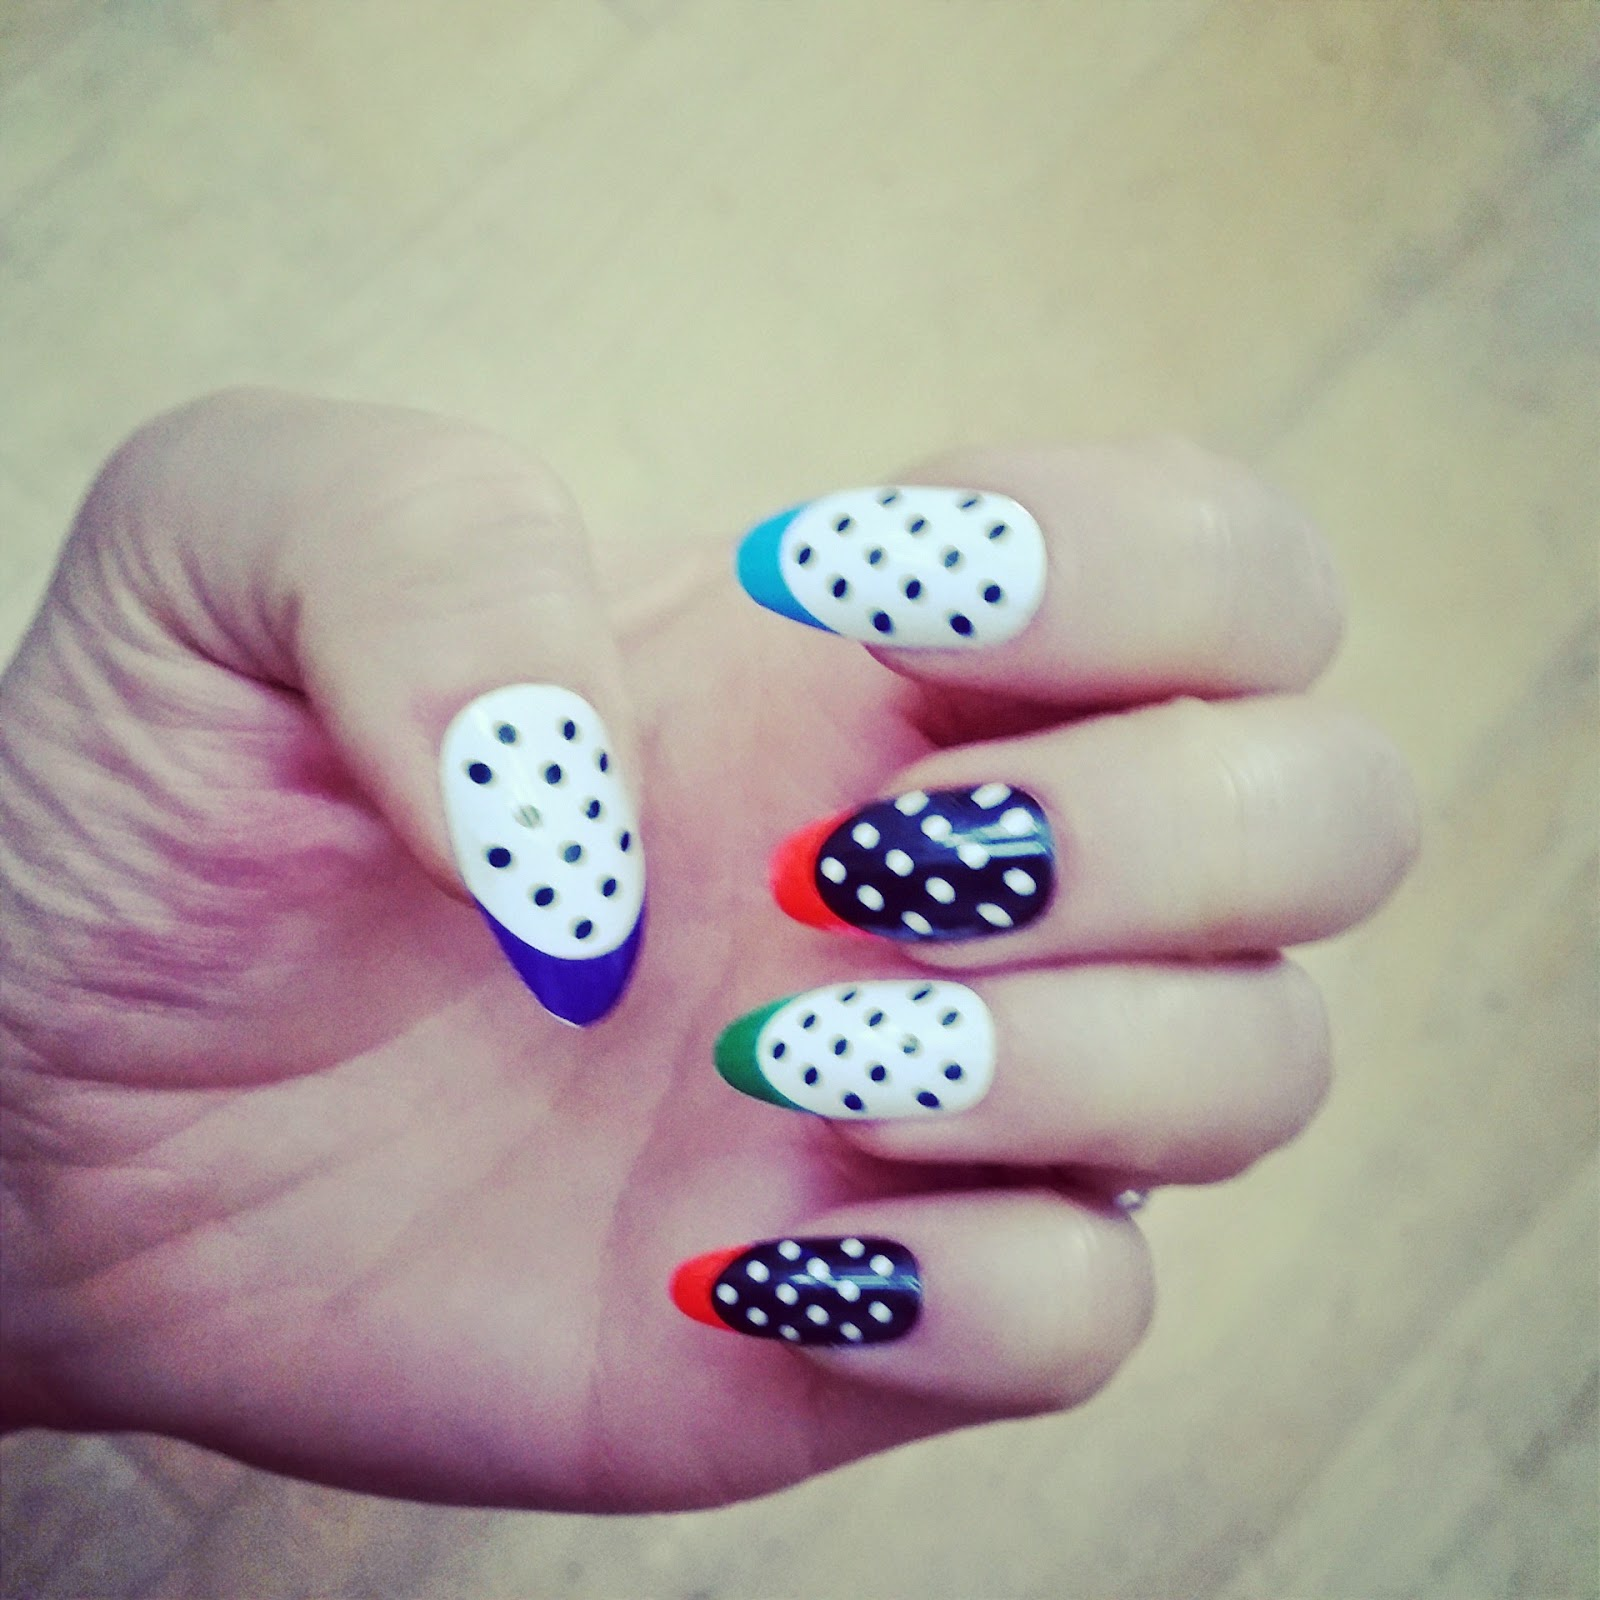 Likes and love house of holland stick on nail art in neon nibs prinsesfo Gallery